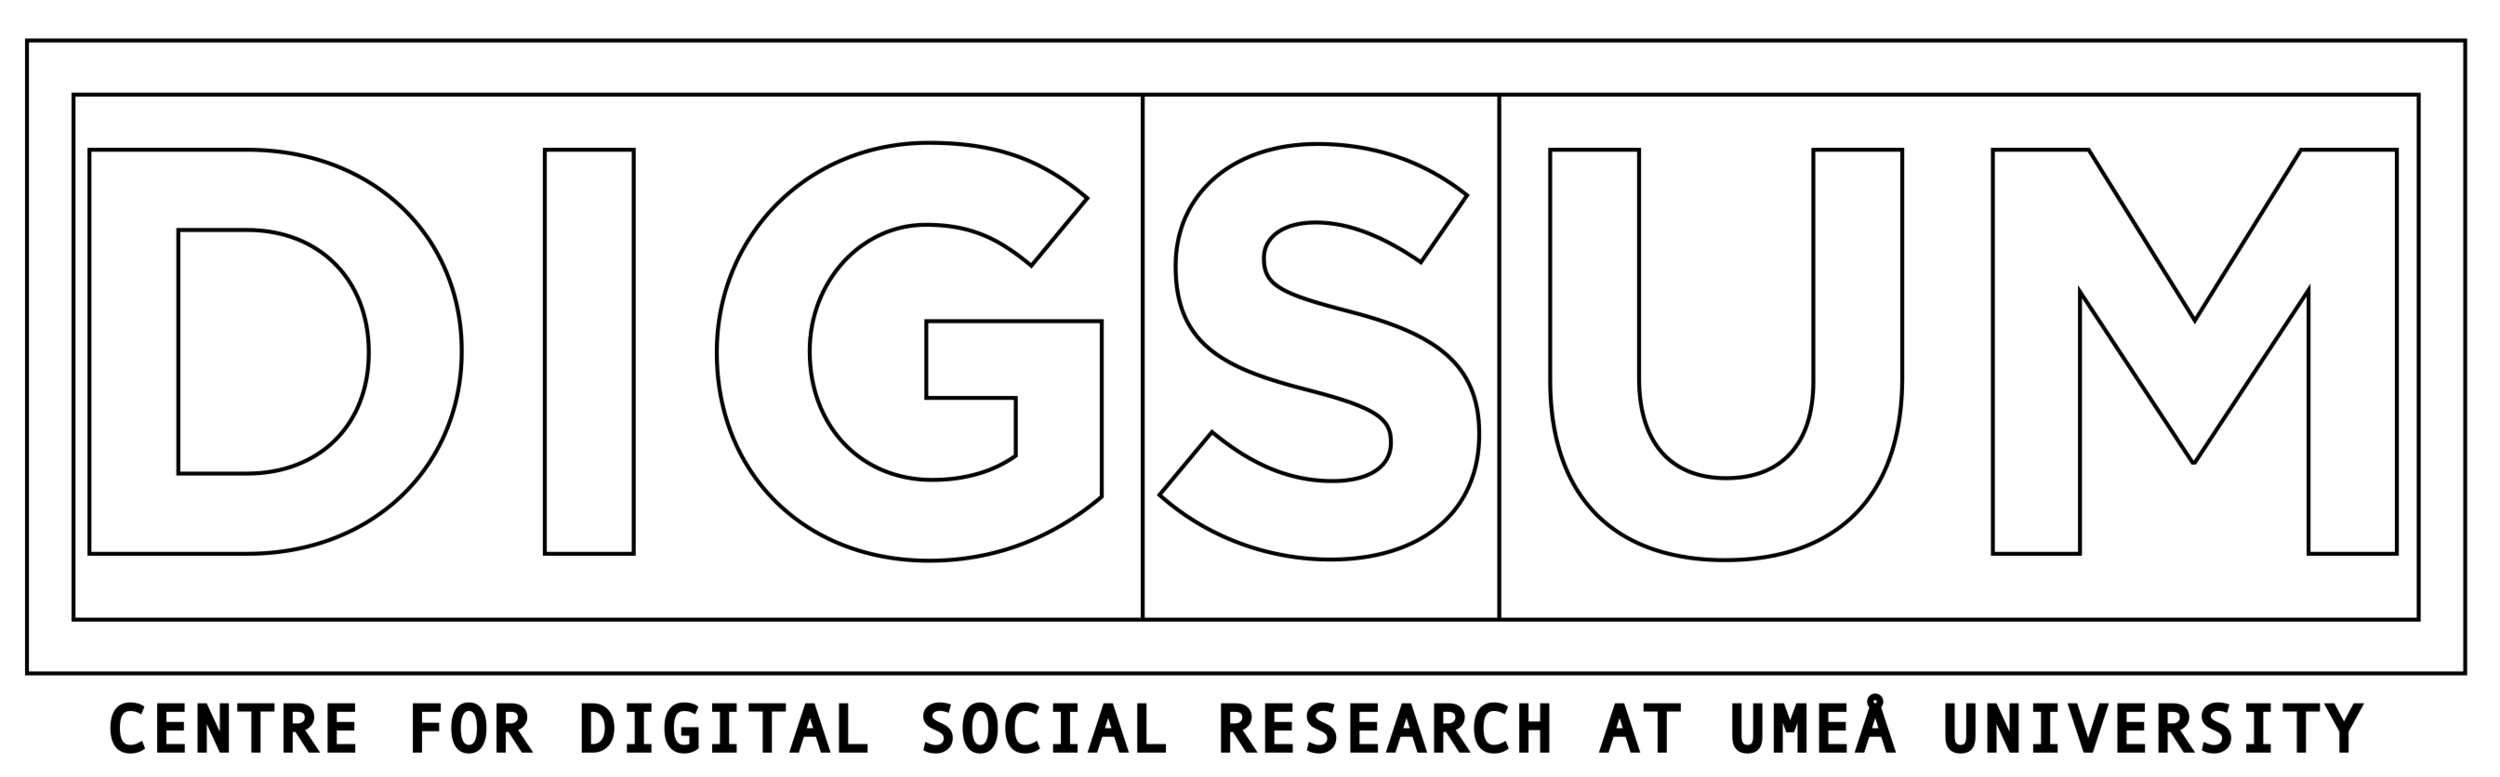 digsum-minimal-transparent-black-text.png